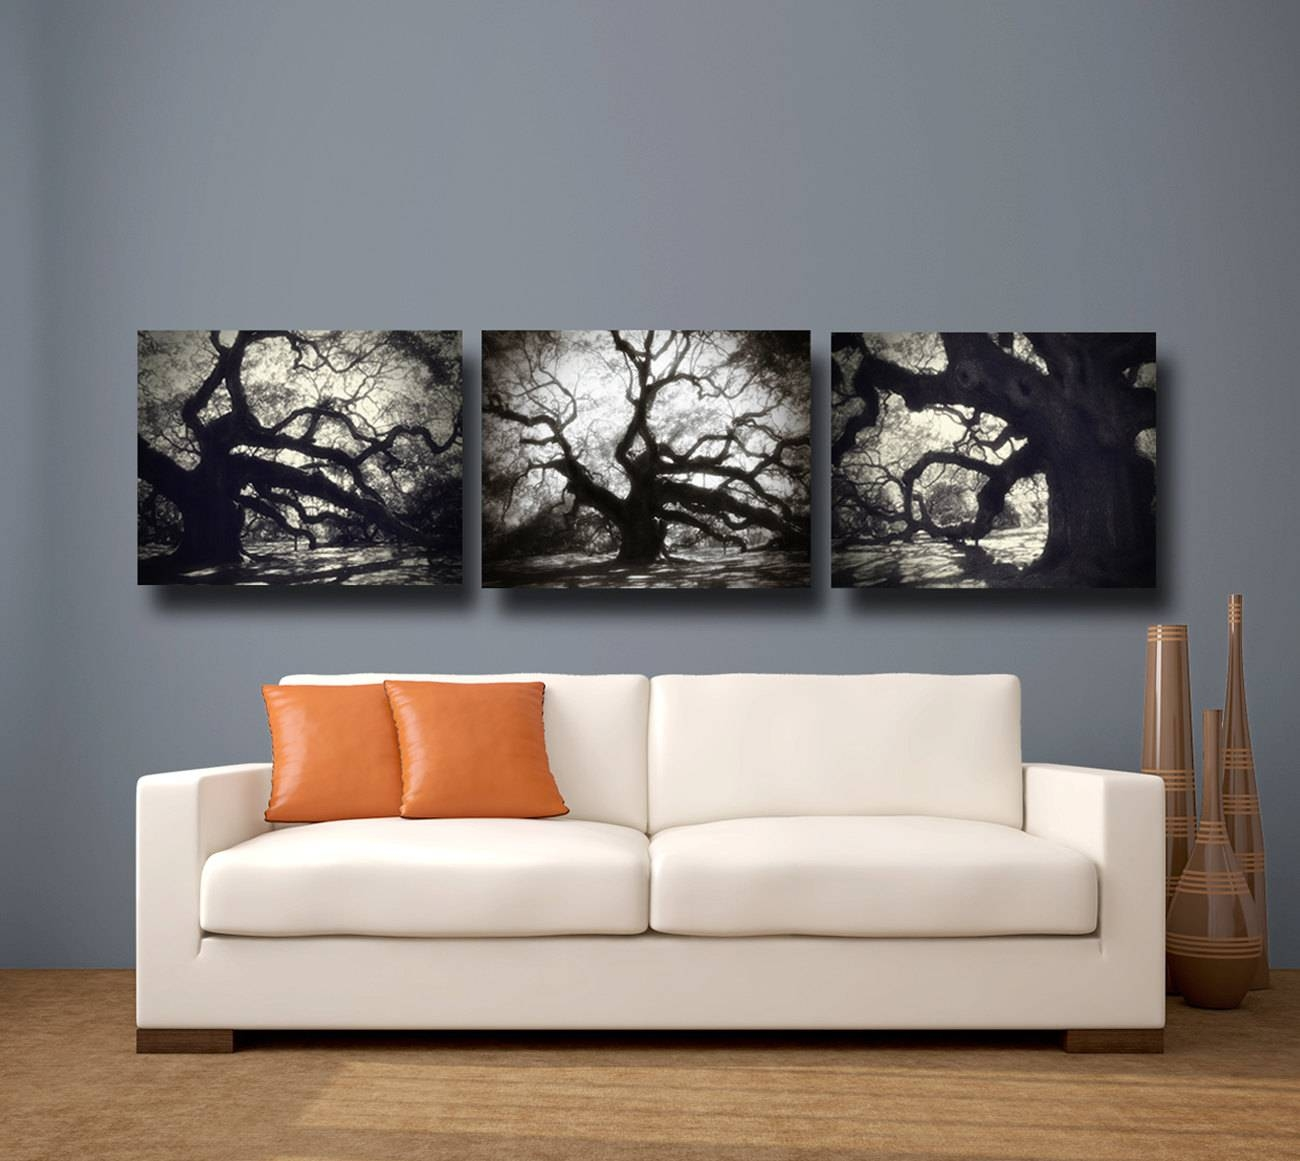 Wall Art Designs: Wall Canvas Art On Demand Free Printable Cheap Within Best And Newest Cheap Big Wall Art (View 18 of 20)